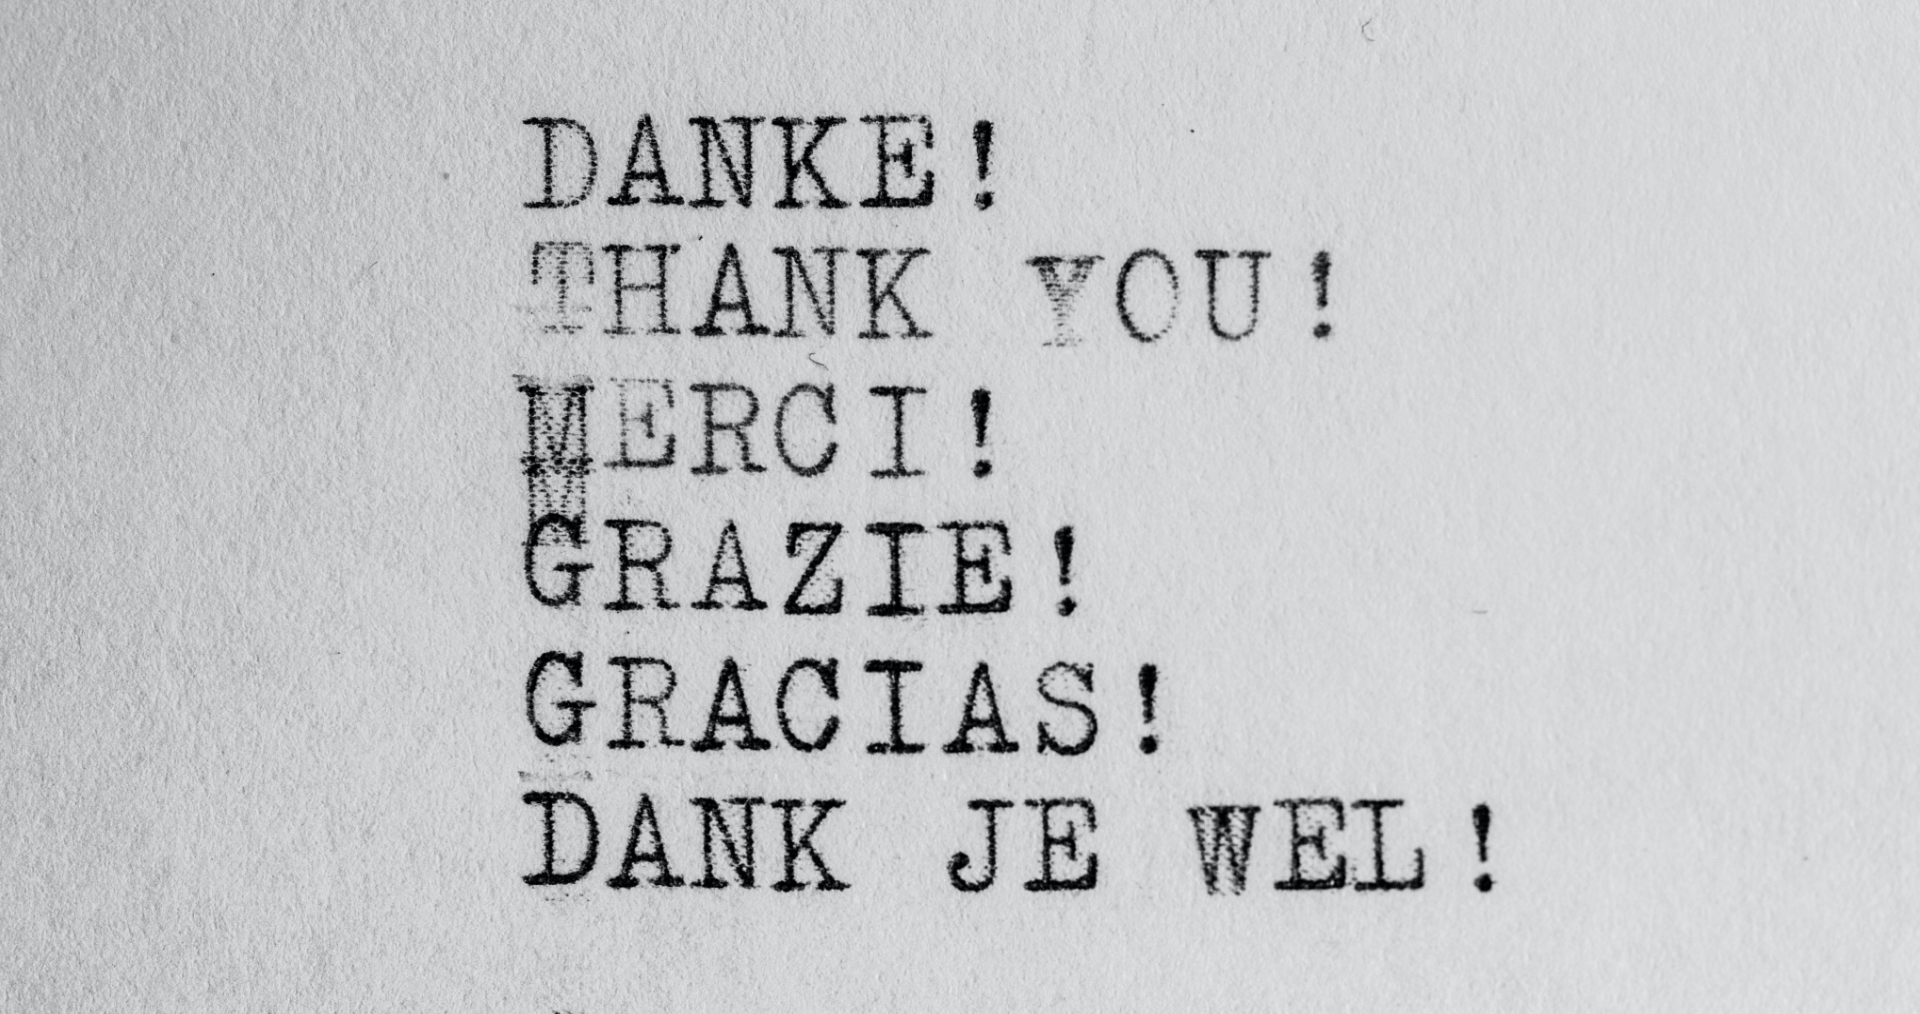 The image was created by using an old type writer to type out thank you in six different languages